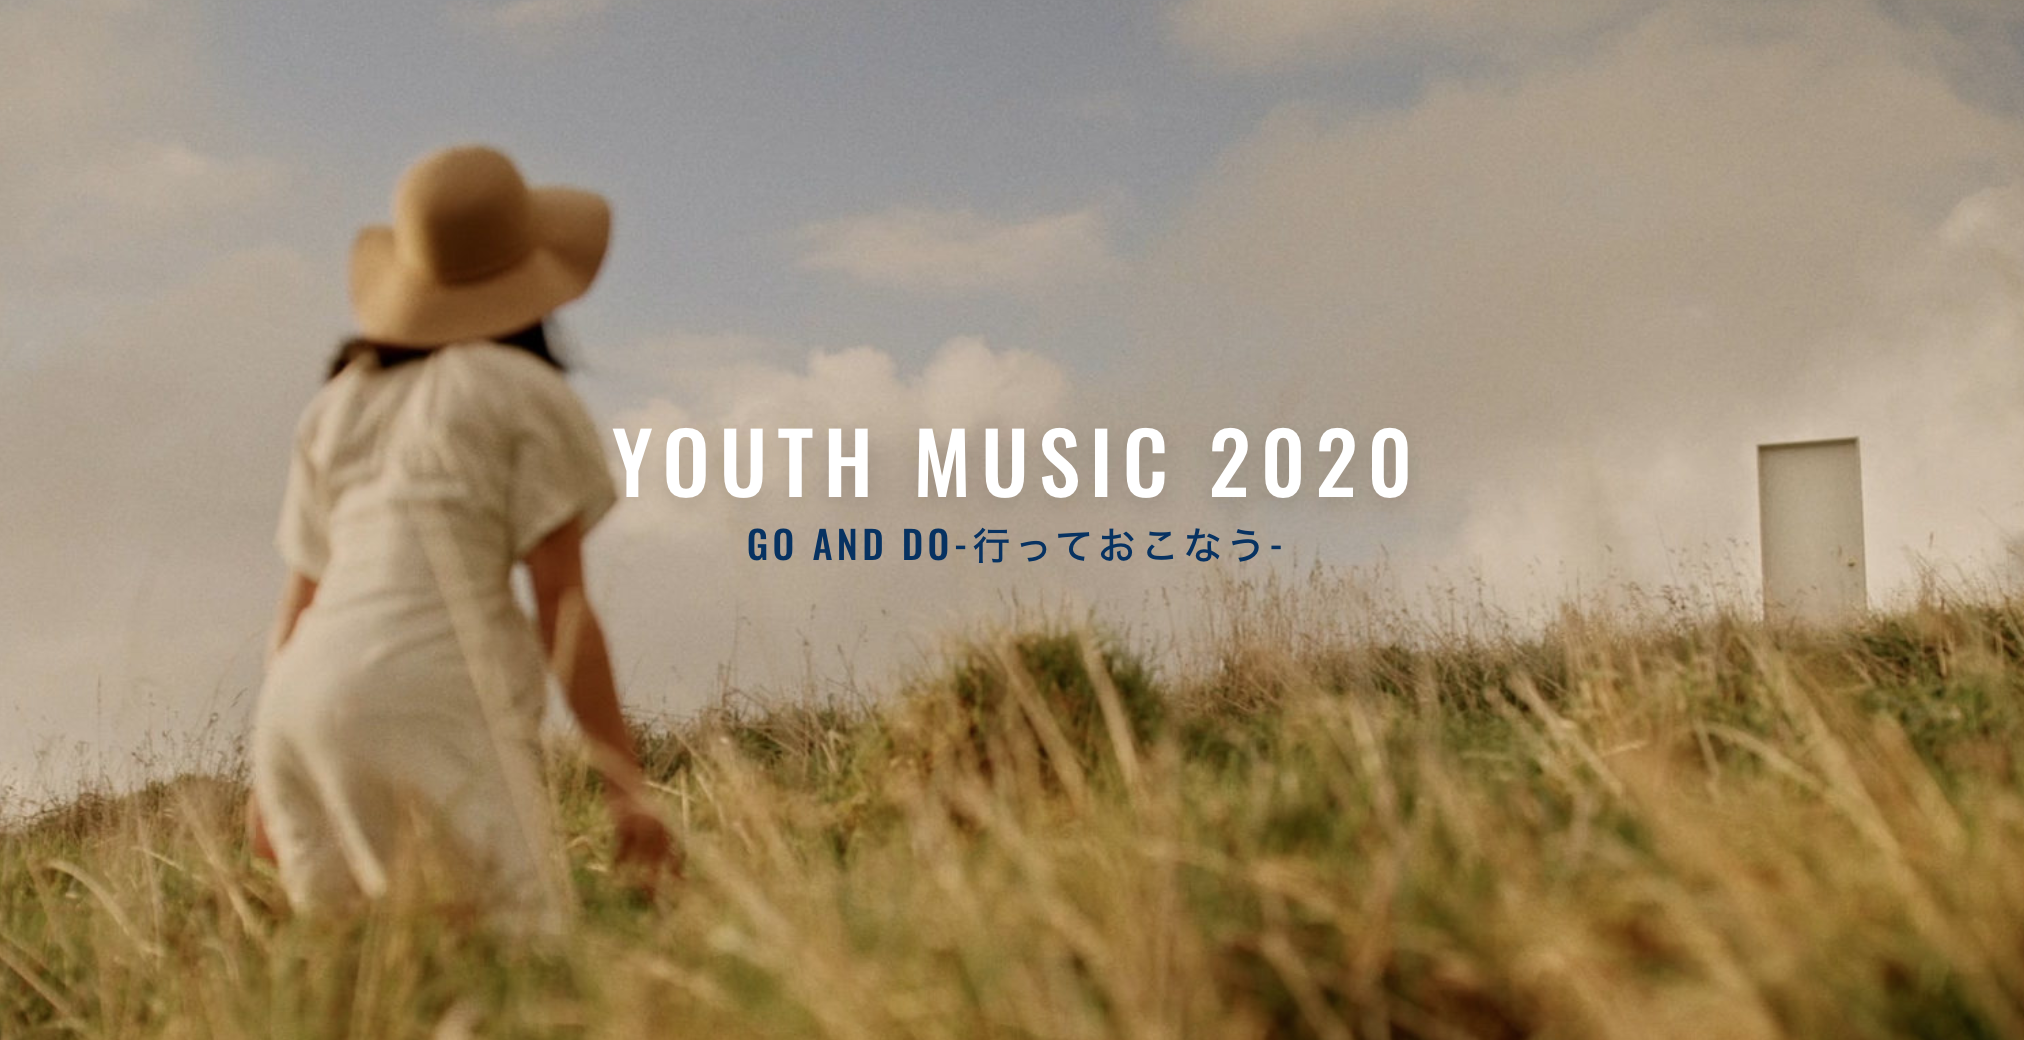 Youth Music 2020